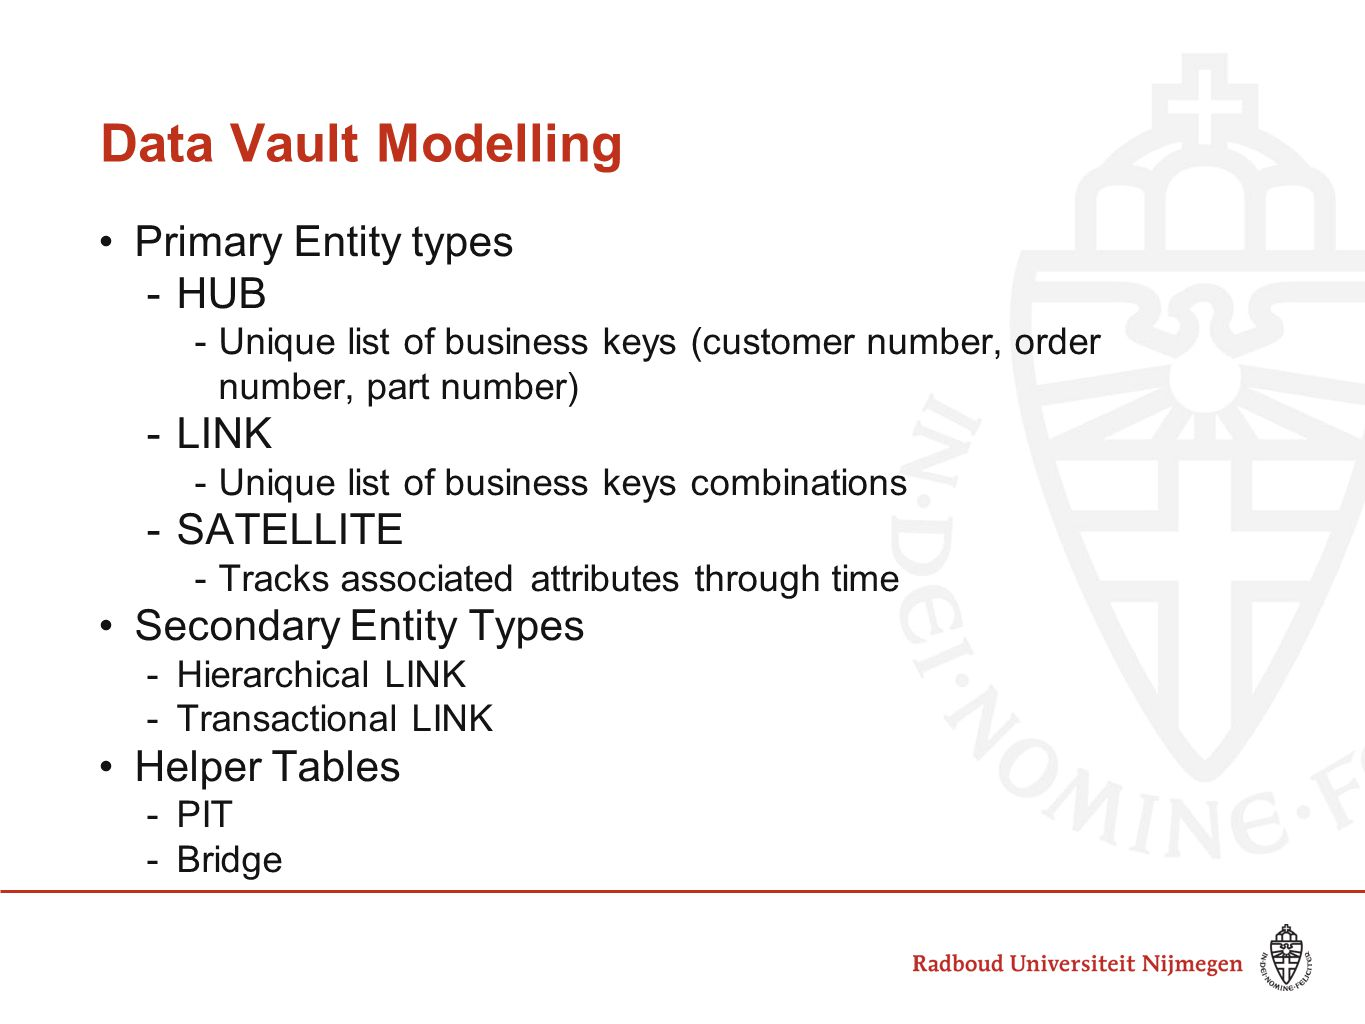 Data Vault Modelling Primary Entity types HUB LINK SATELLITE